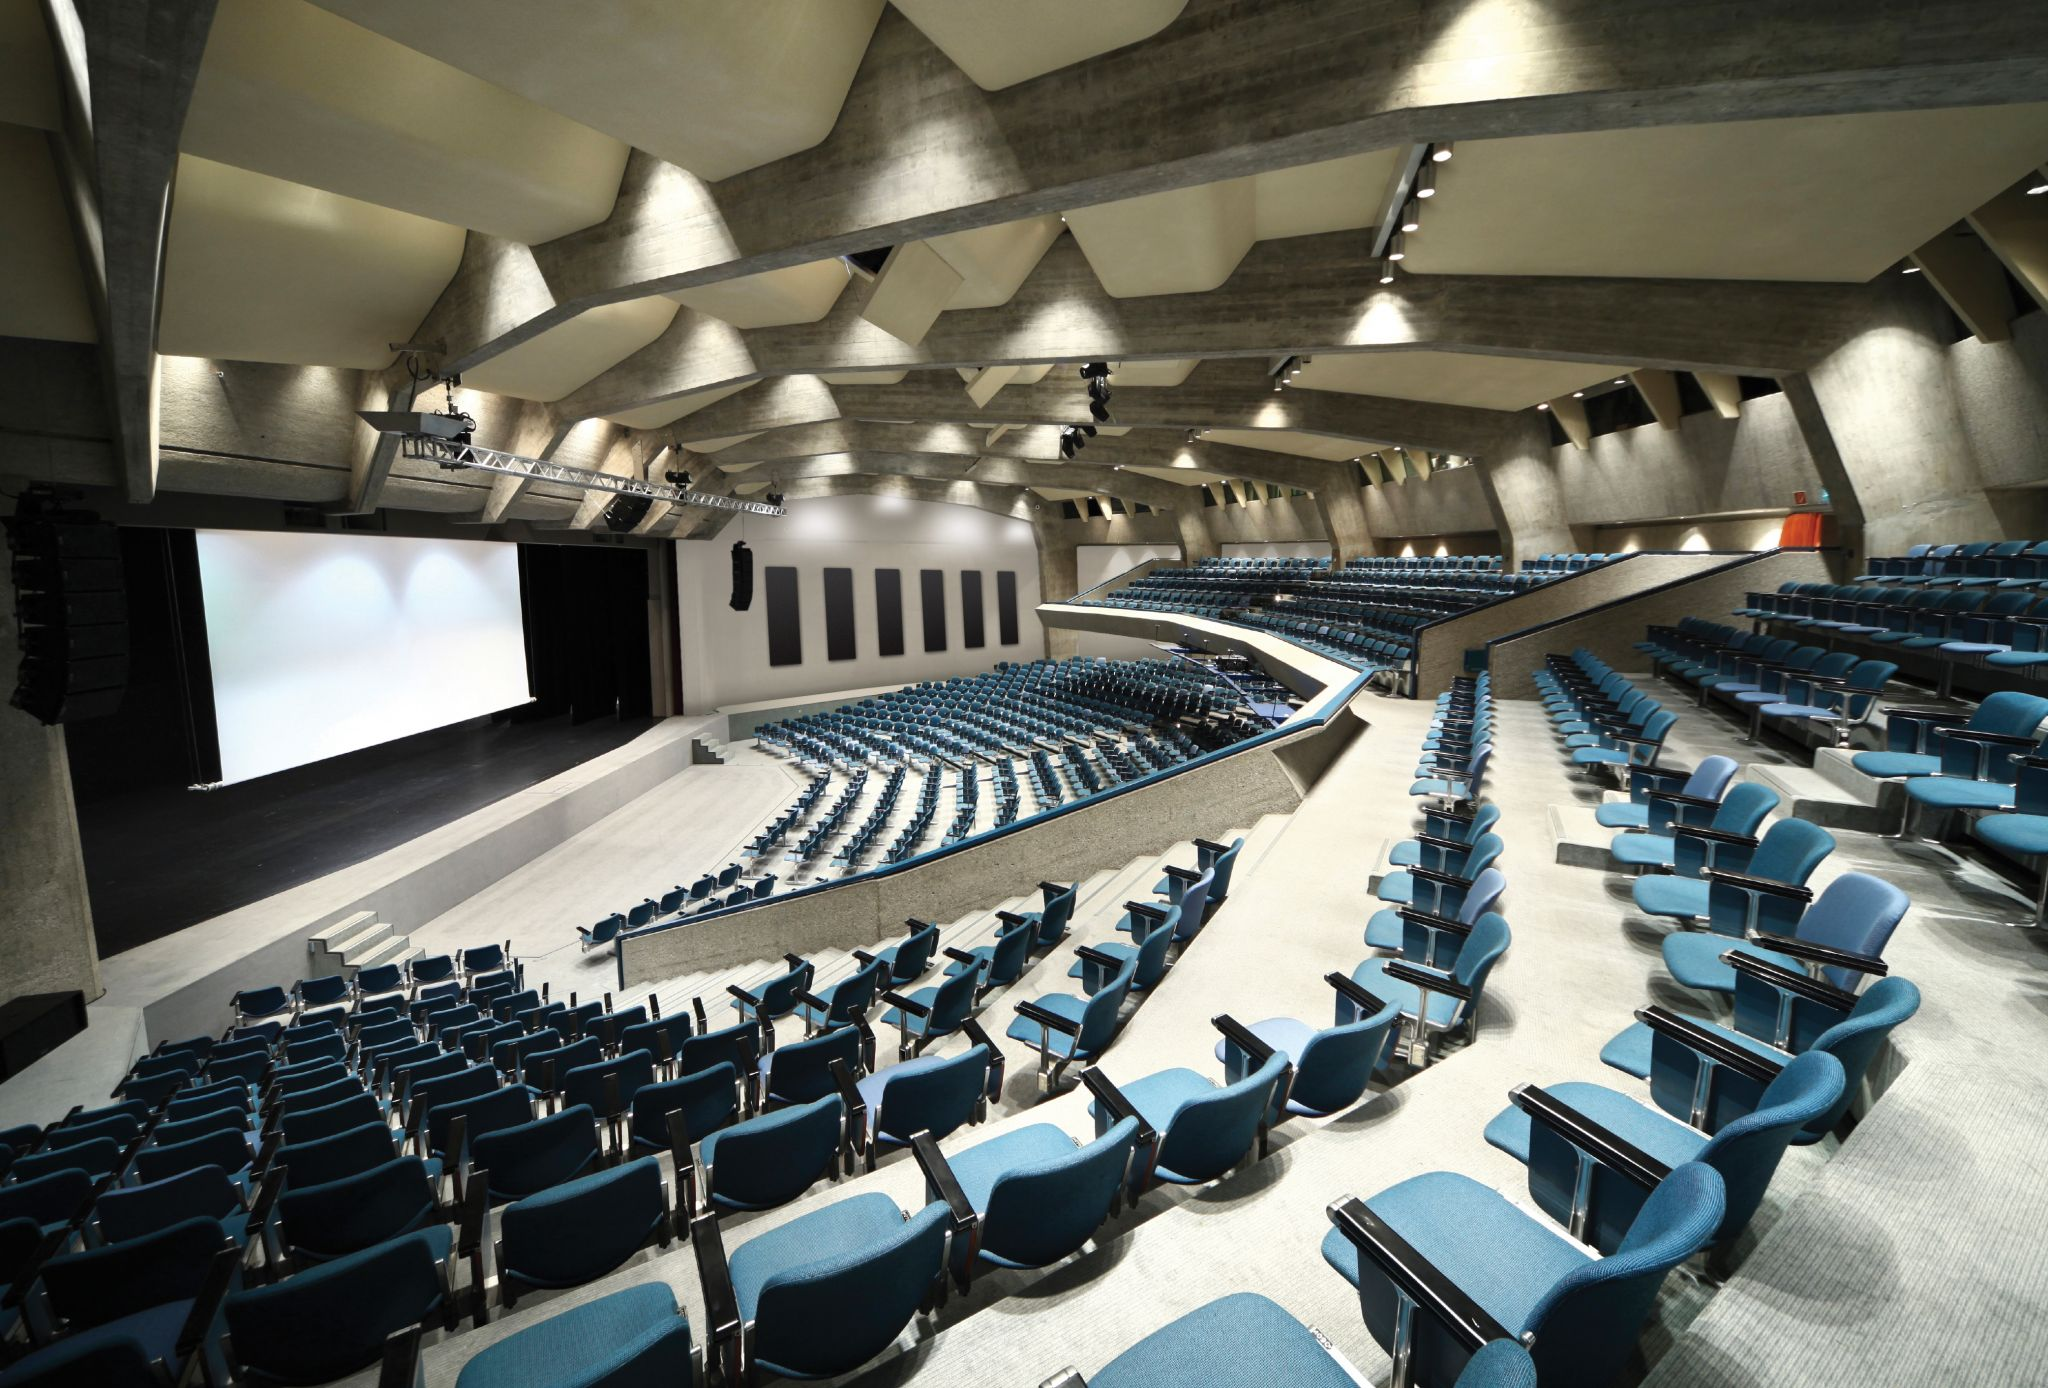 The insulated boards used in the theatre panels shown here are covered in basstrap acousticenergy- absorbers. The insulated boards used in the theatre panels shown here are covered in basstrap acousticenergy- absorbers. Photo courtesy Roxul